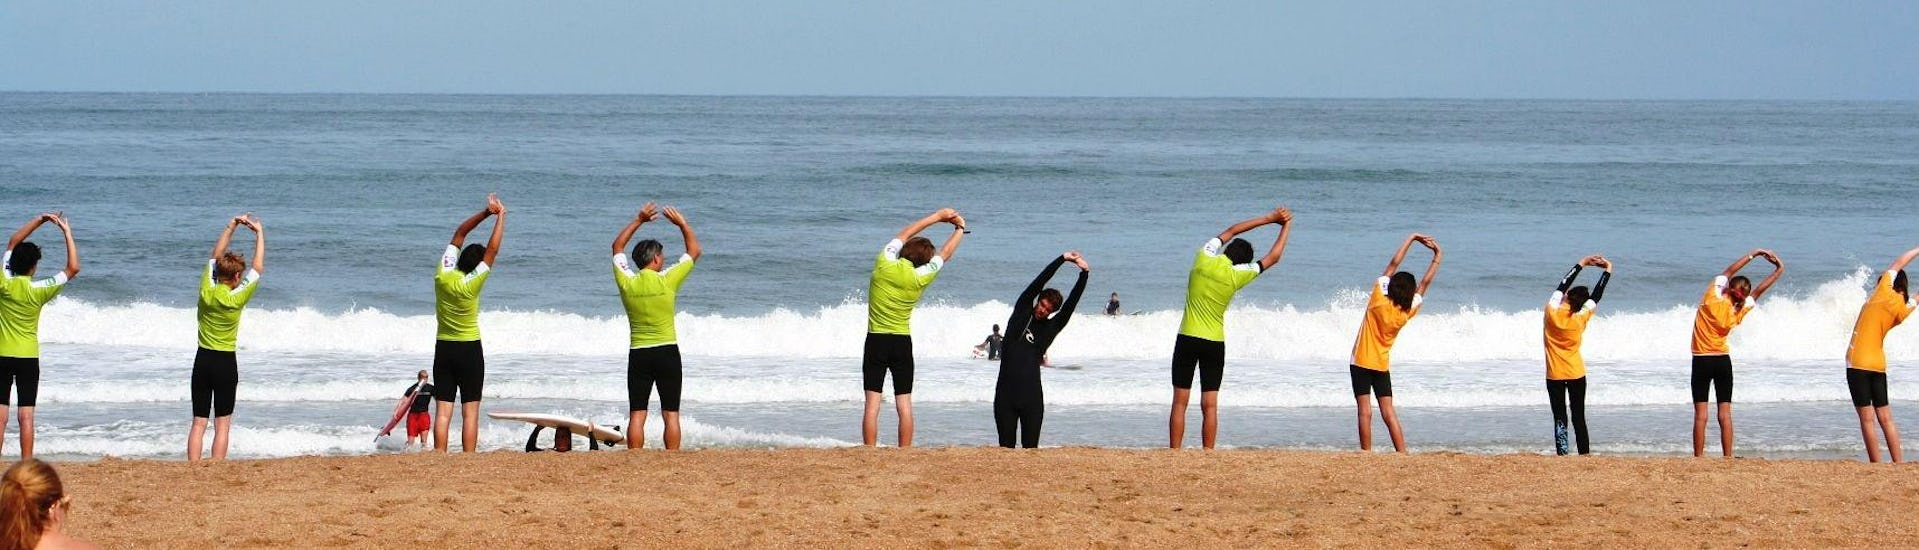 Private Surfing Lessons - Marinella Beach - Anglet